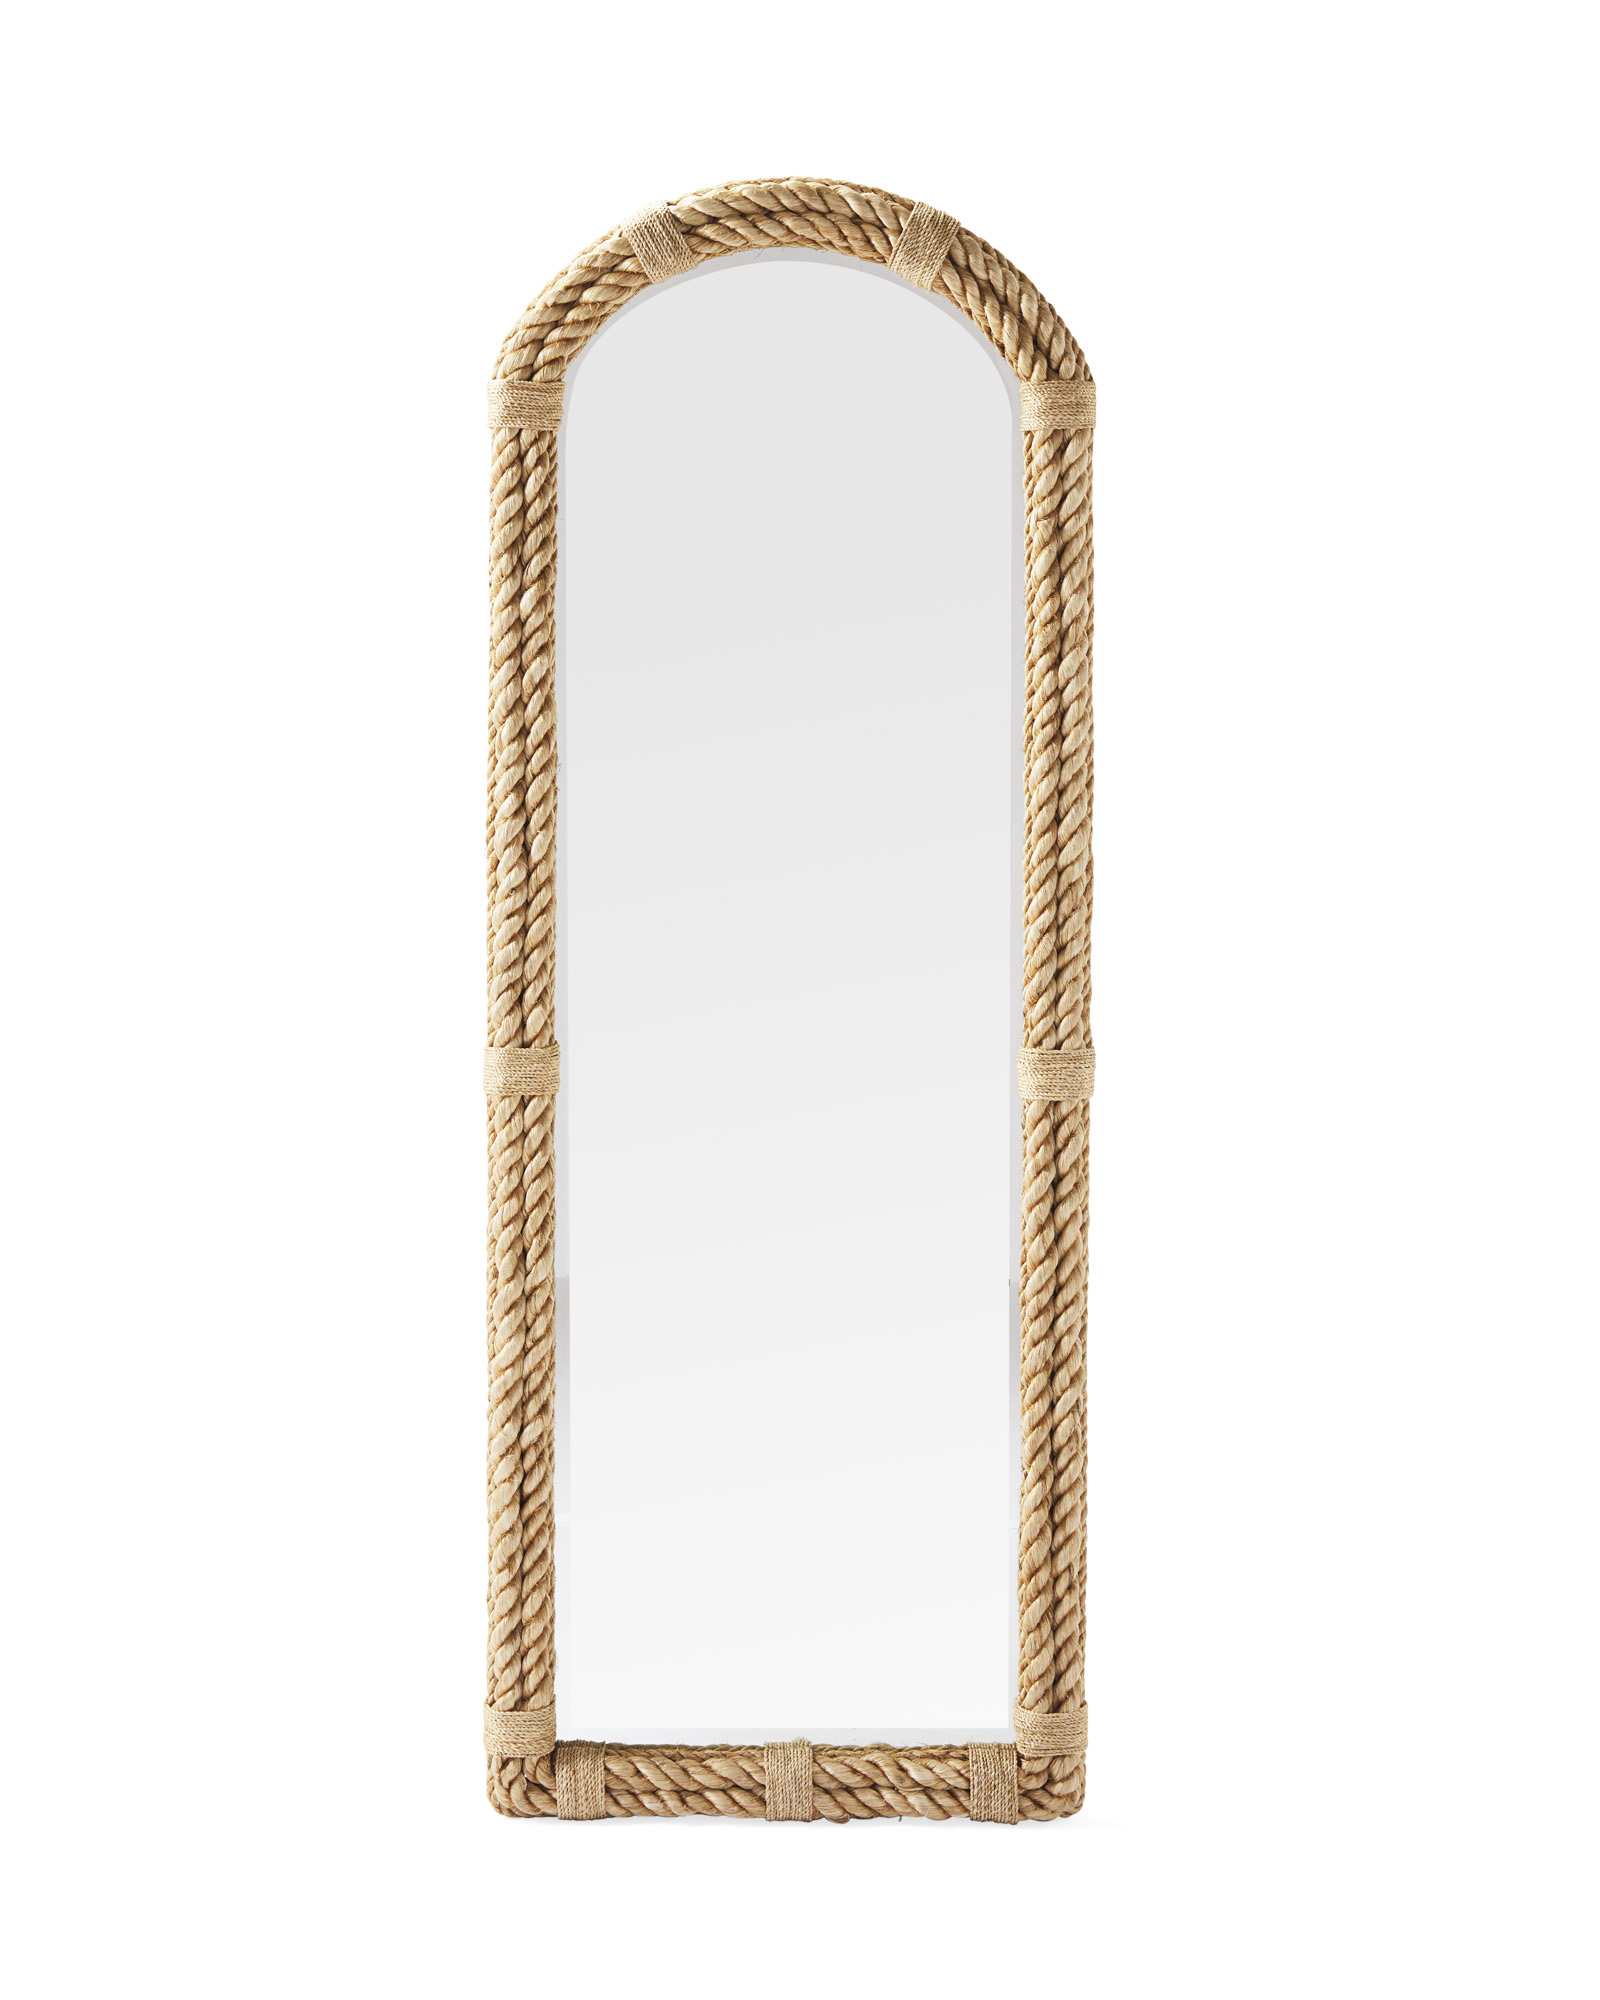 Nautical Rope Floor Mirror,